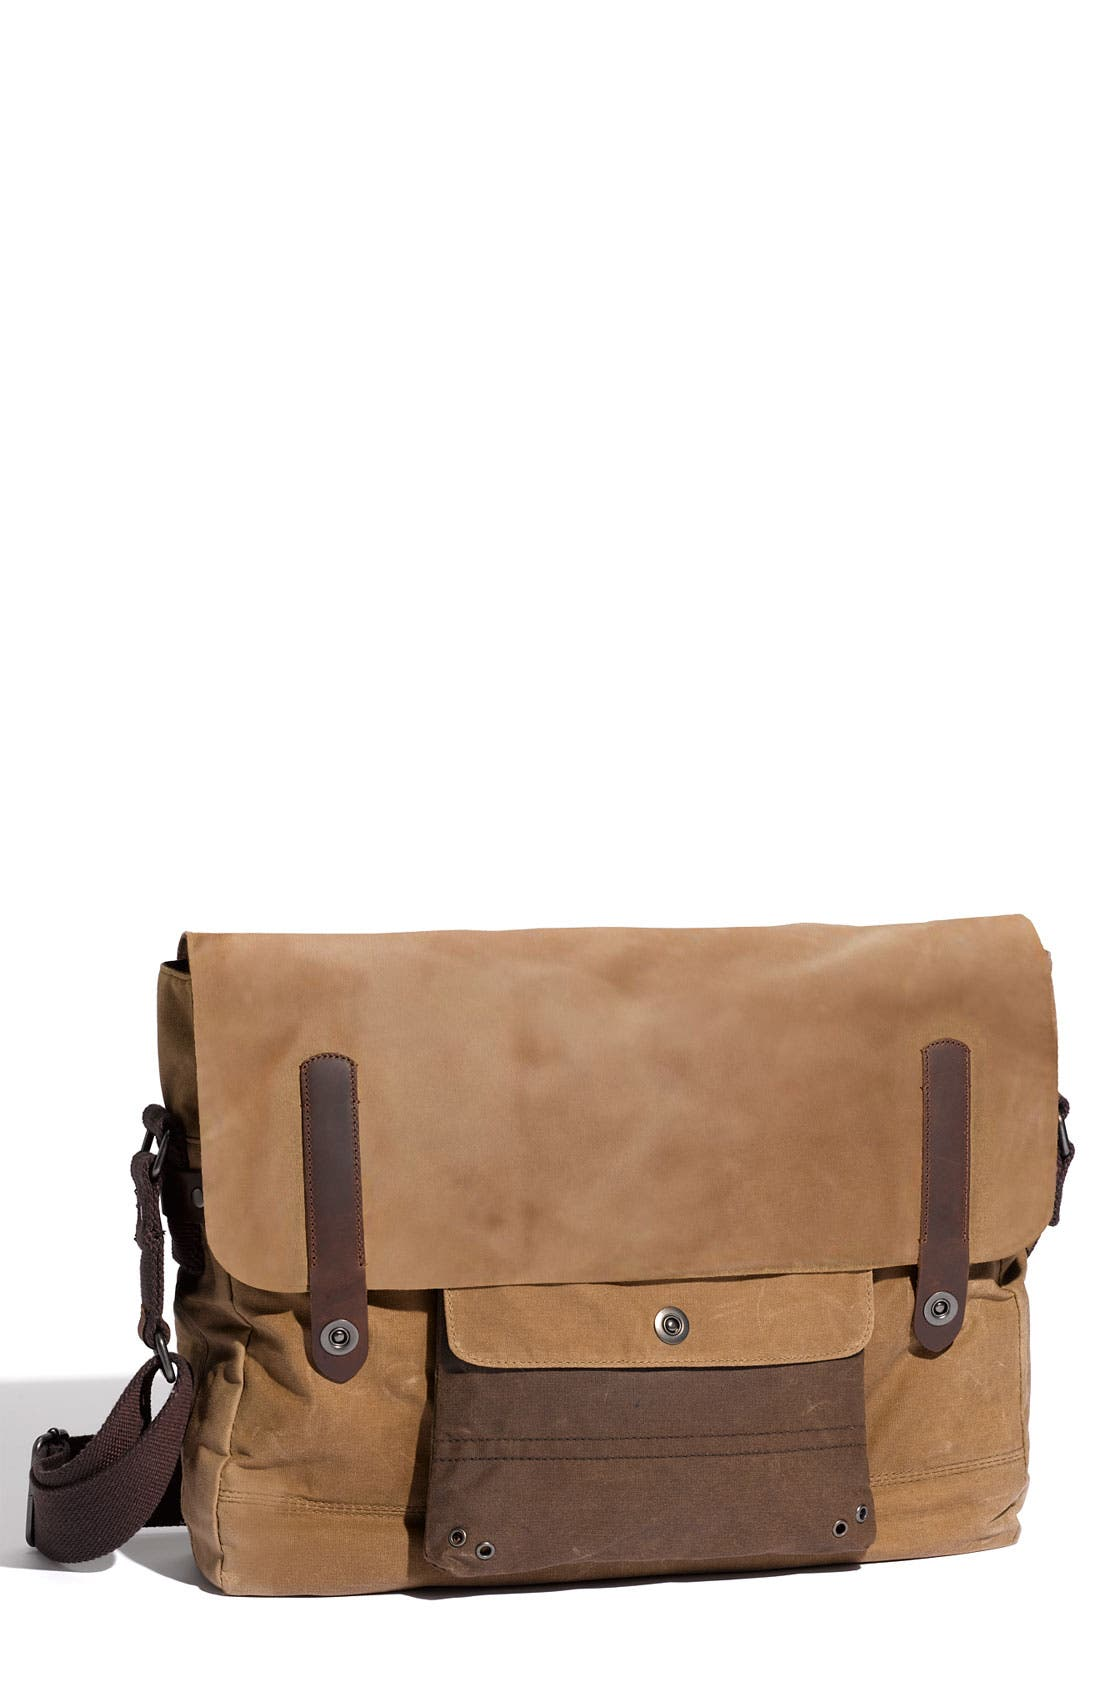 Main Image - Levi's® 'River Rock' Messenger Bag